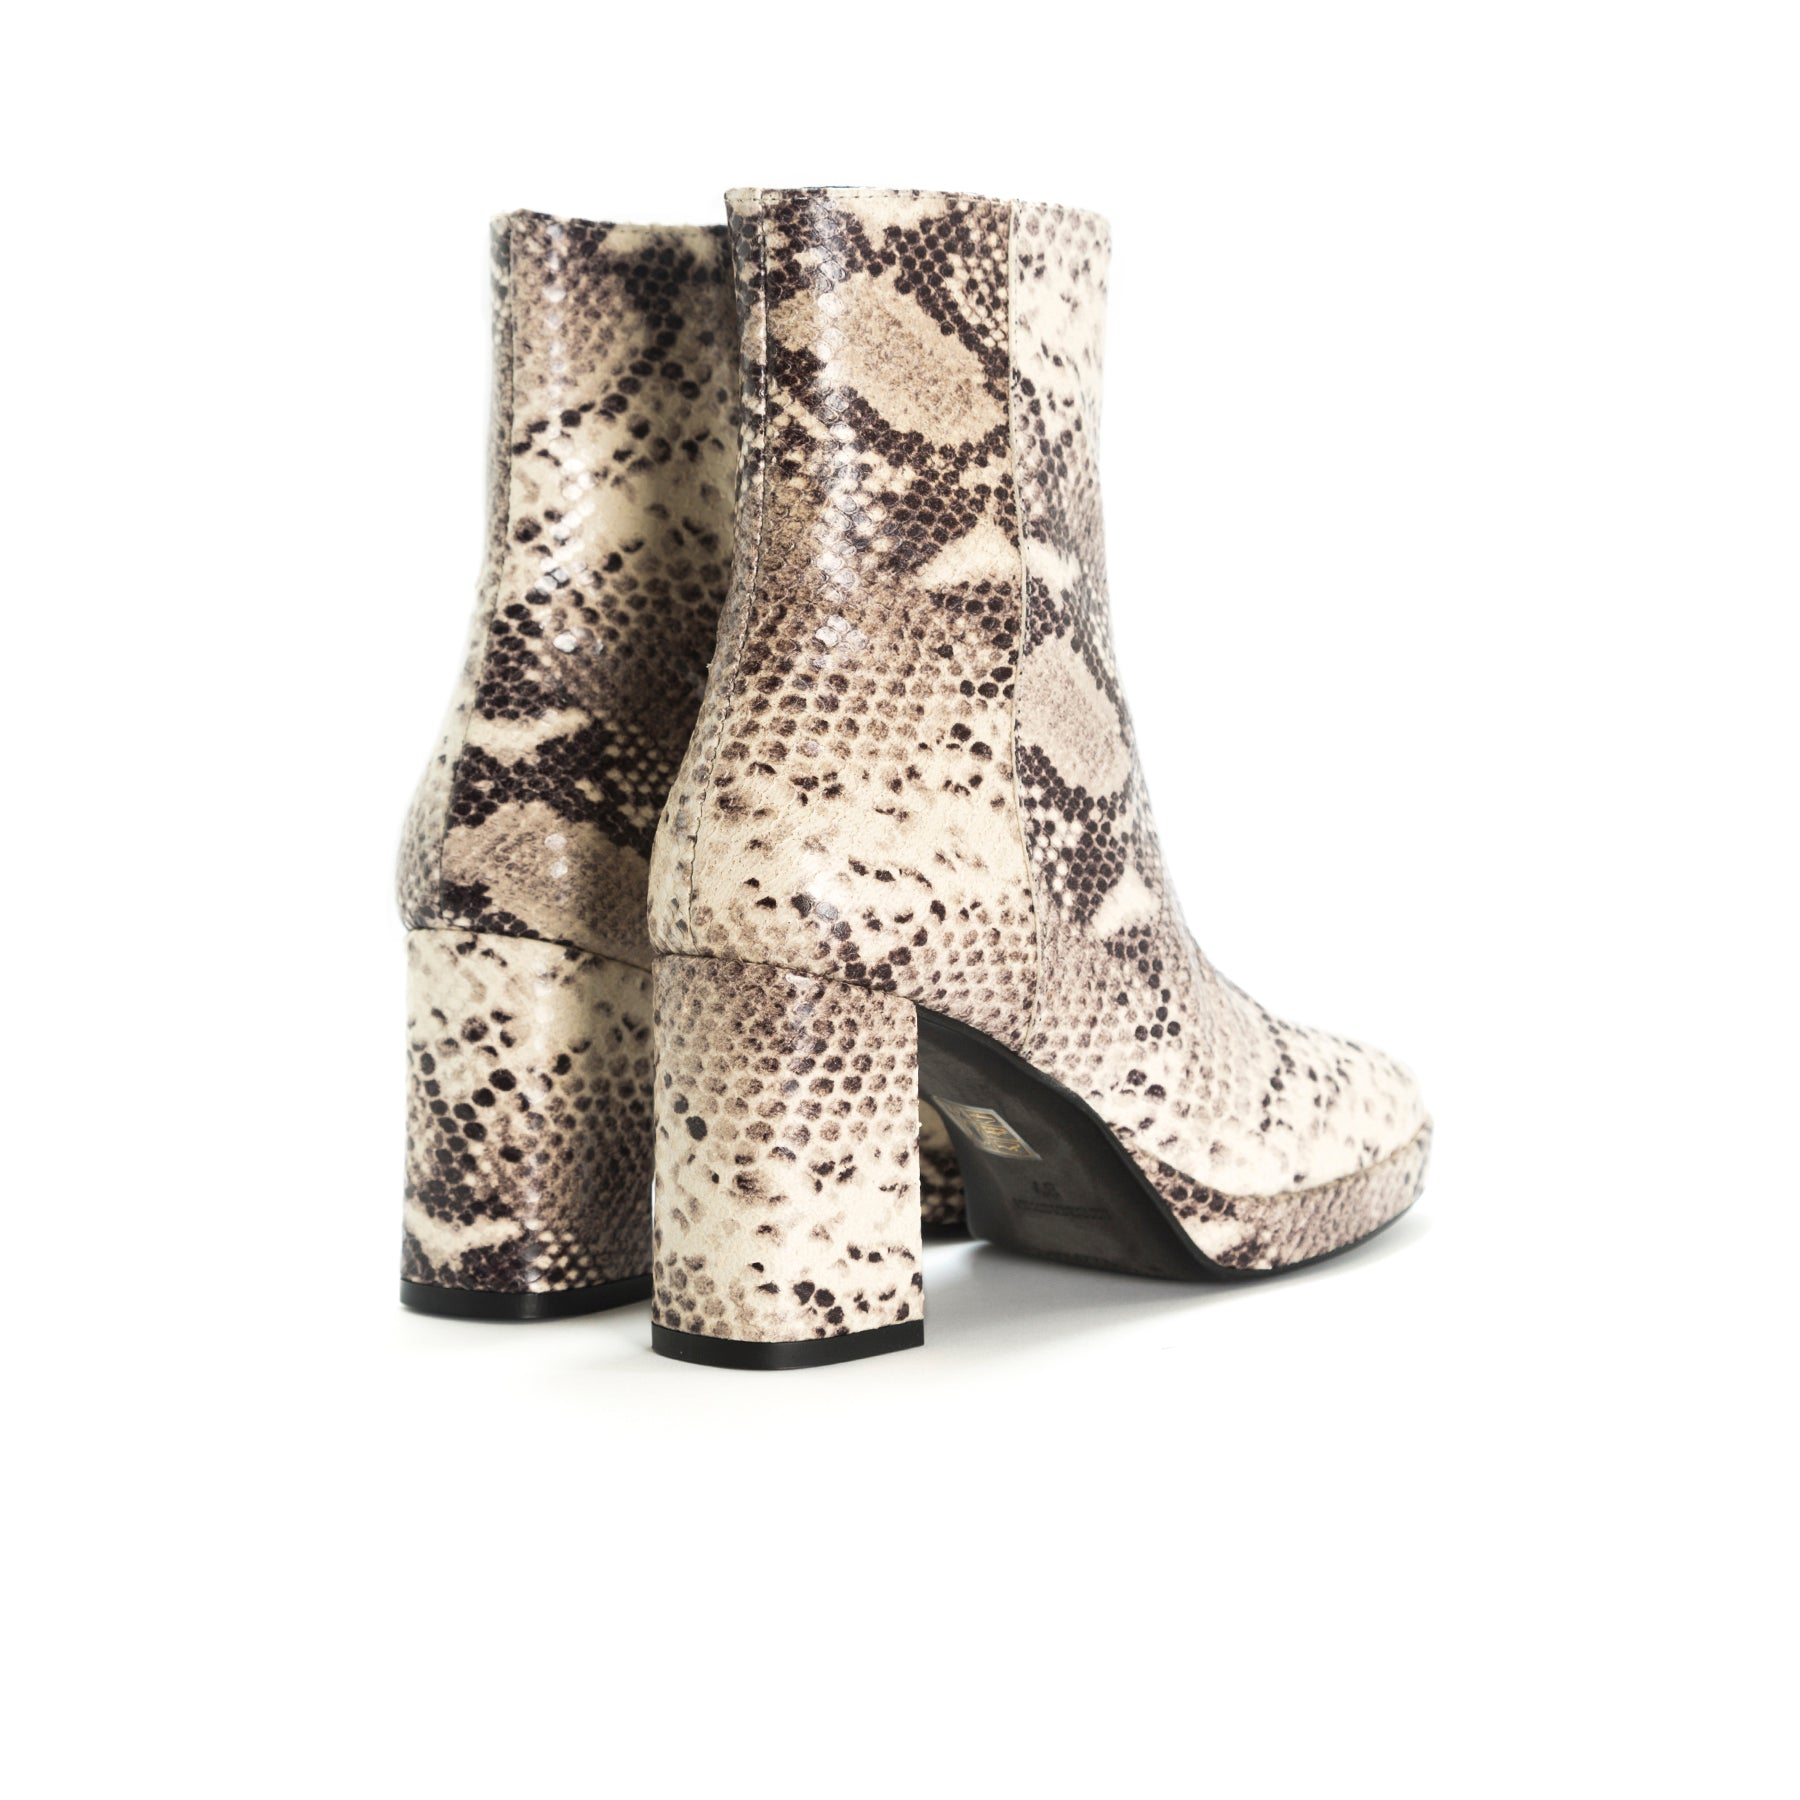 Henessey Nude Snake Ankle Boots